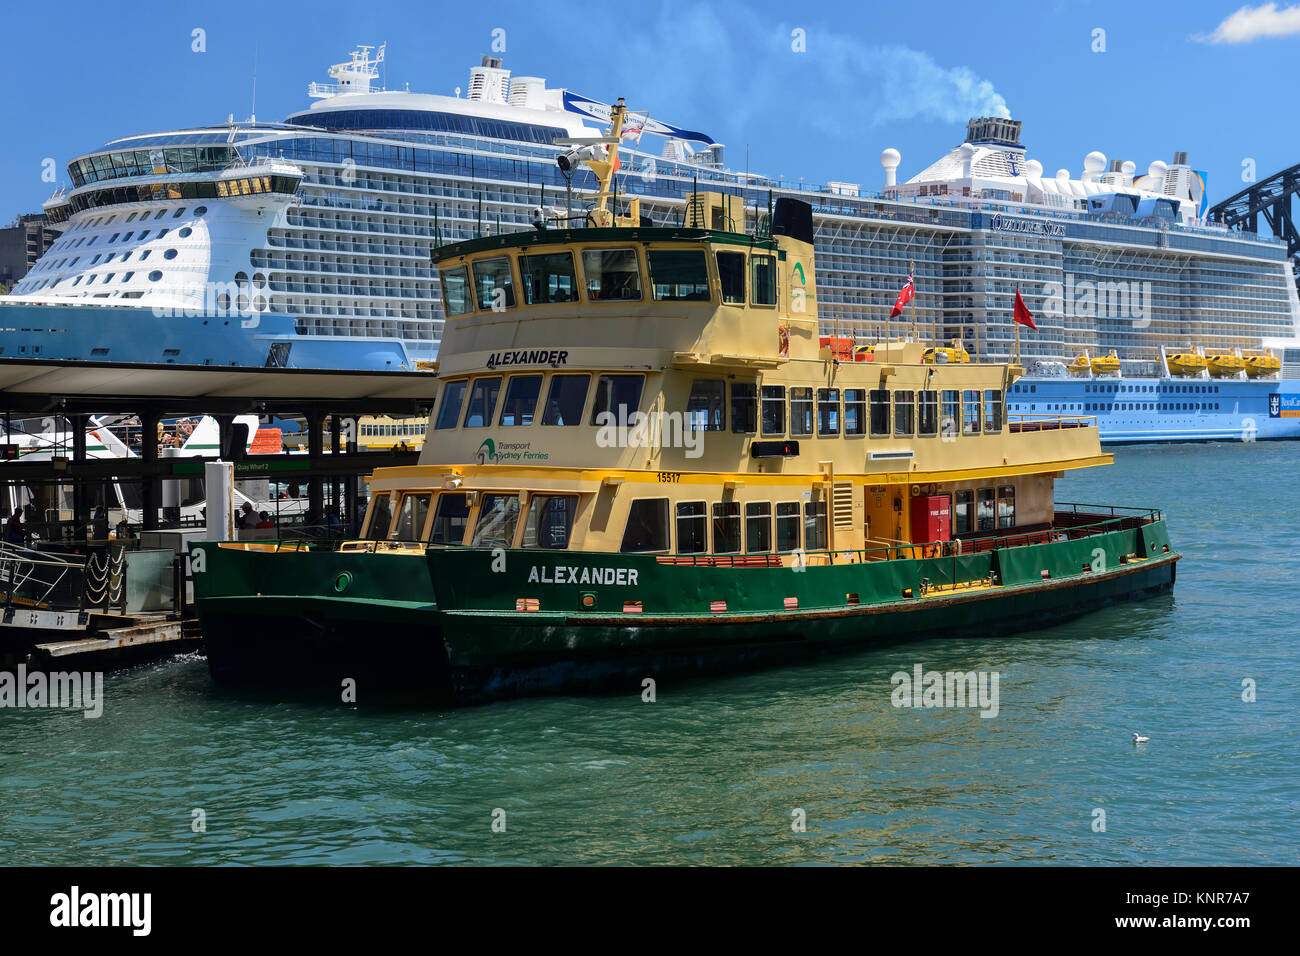 Ferry boat arriving at Circular Quay, with cruise ship berthed at Overseas Passenger Terminal in background - Sydney, - Stock Image